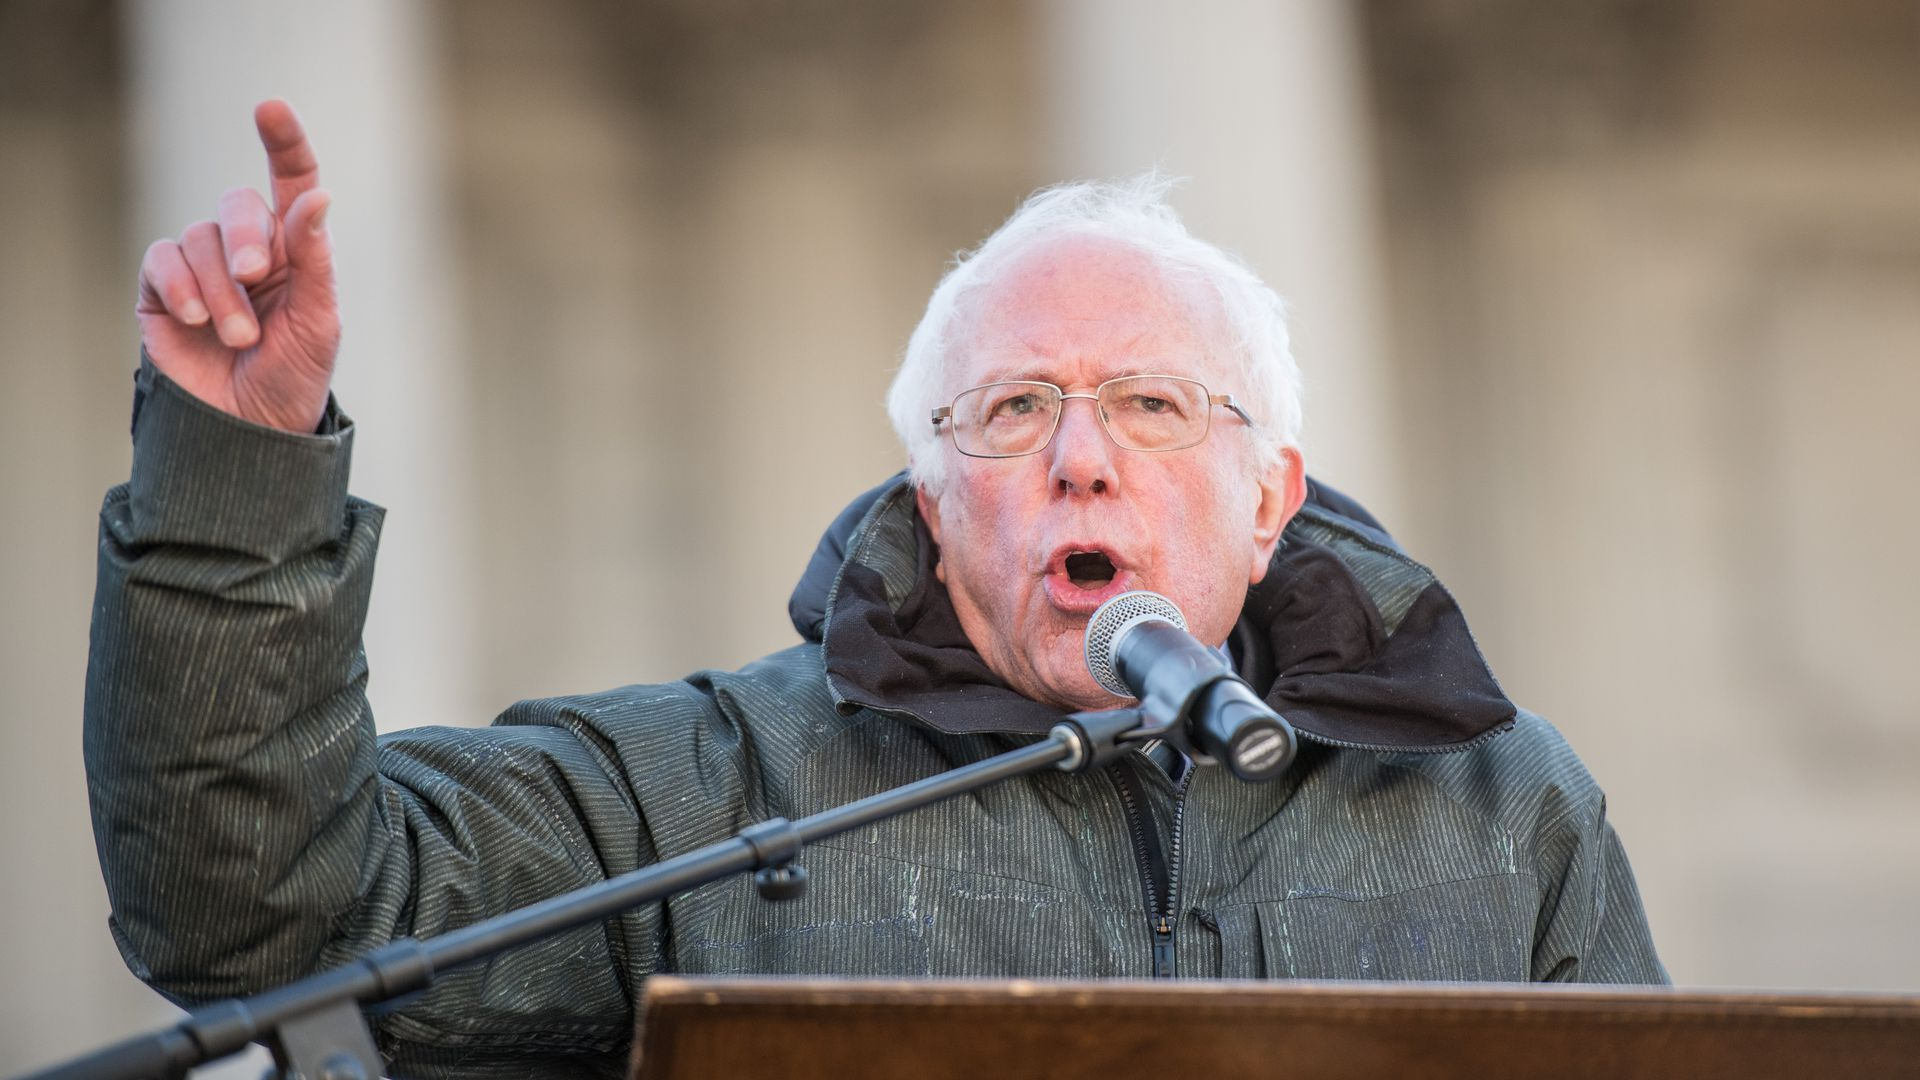 This is a photo of Bernie Sanders giving a speech and pointing in the air